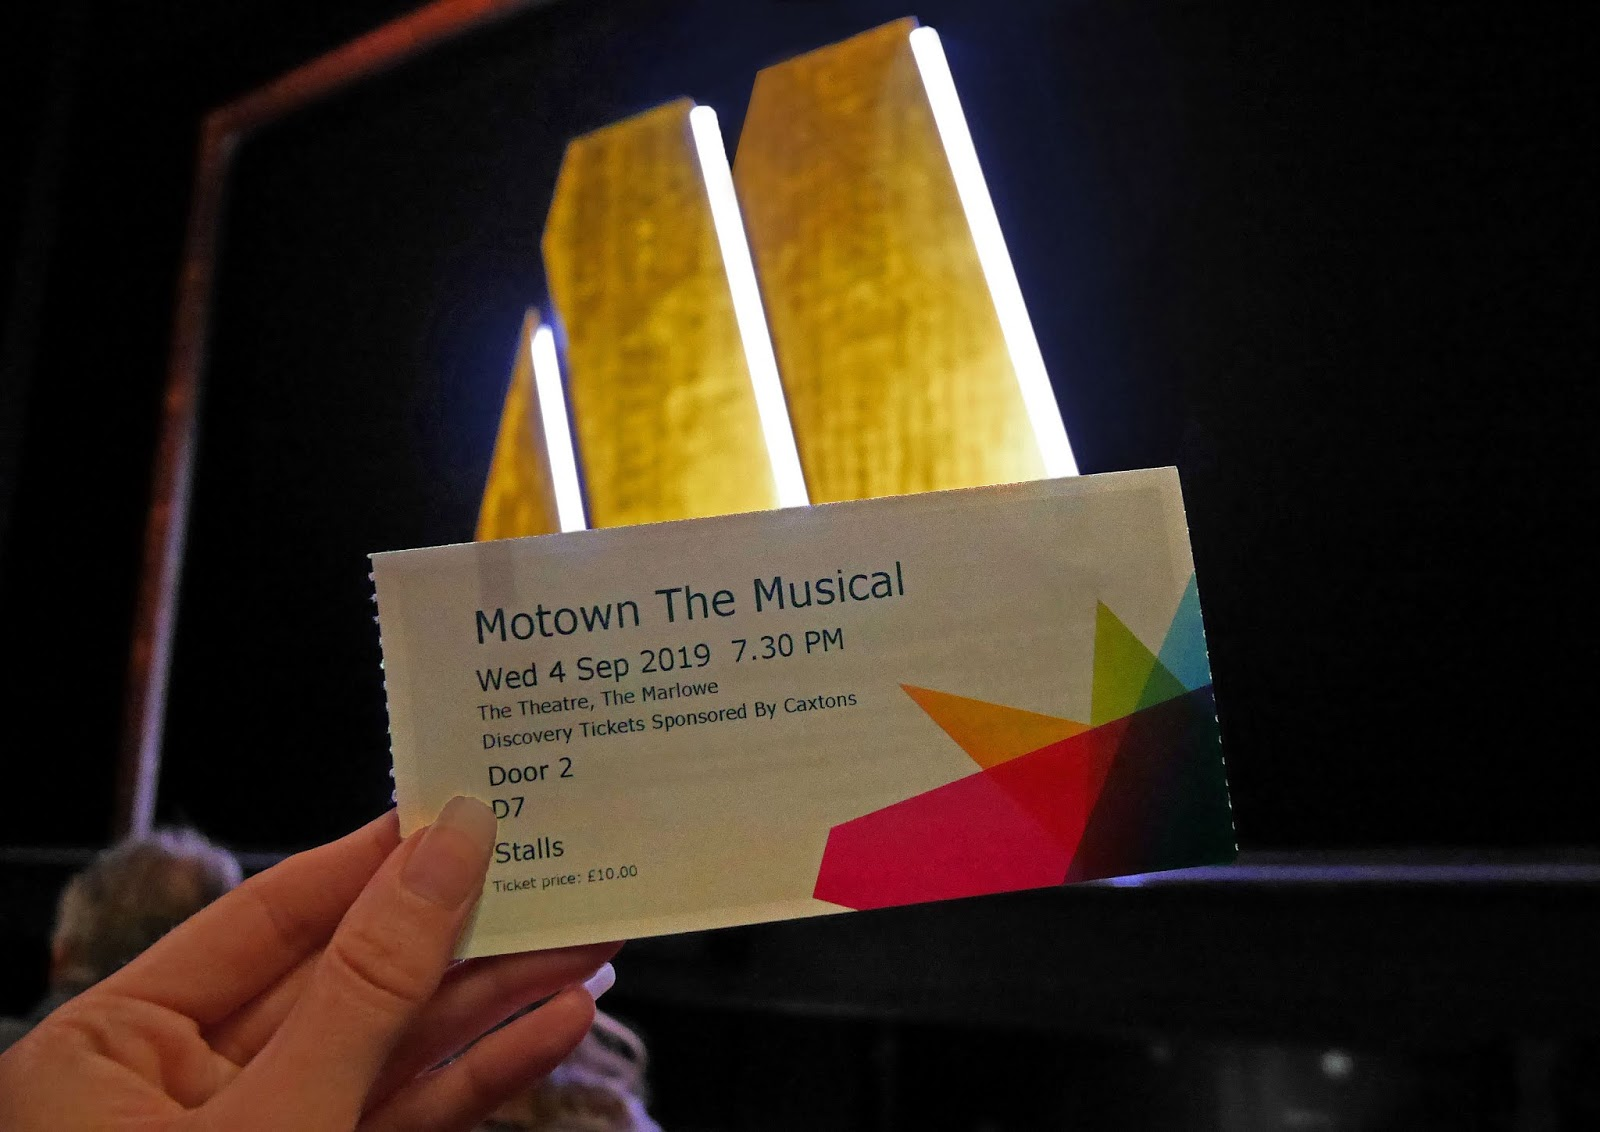 My Discovery Ticket for Motown The Musical at the Marlowe Theatre, Canterbury